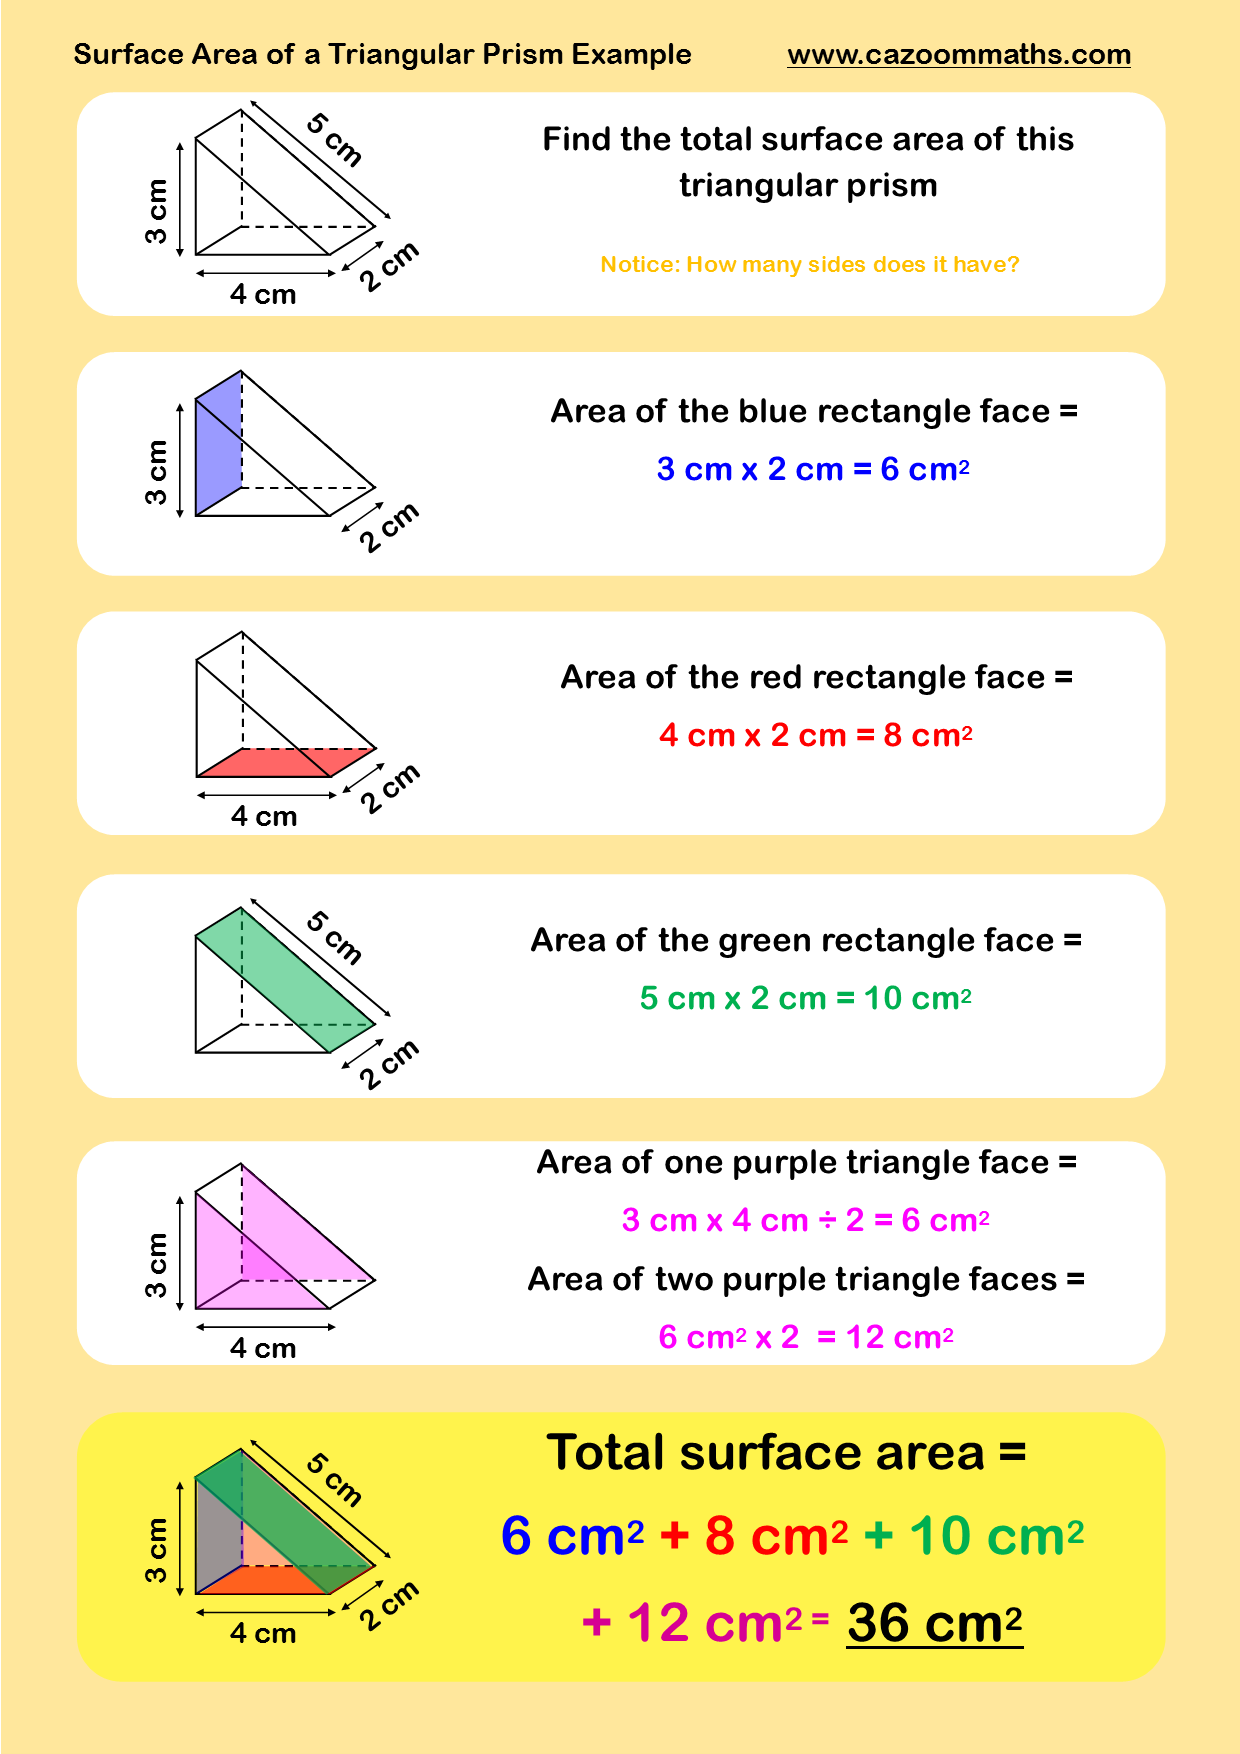 Surface Area Of A Triangular Prism Example